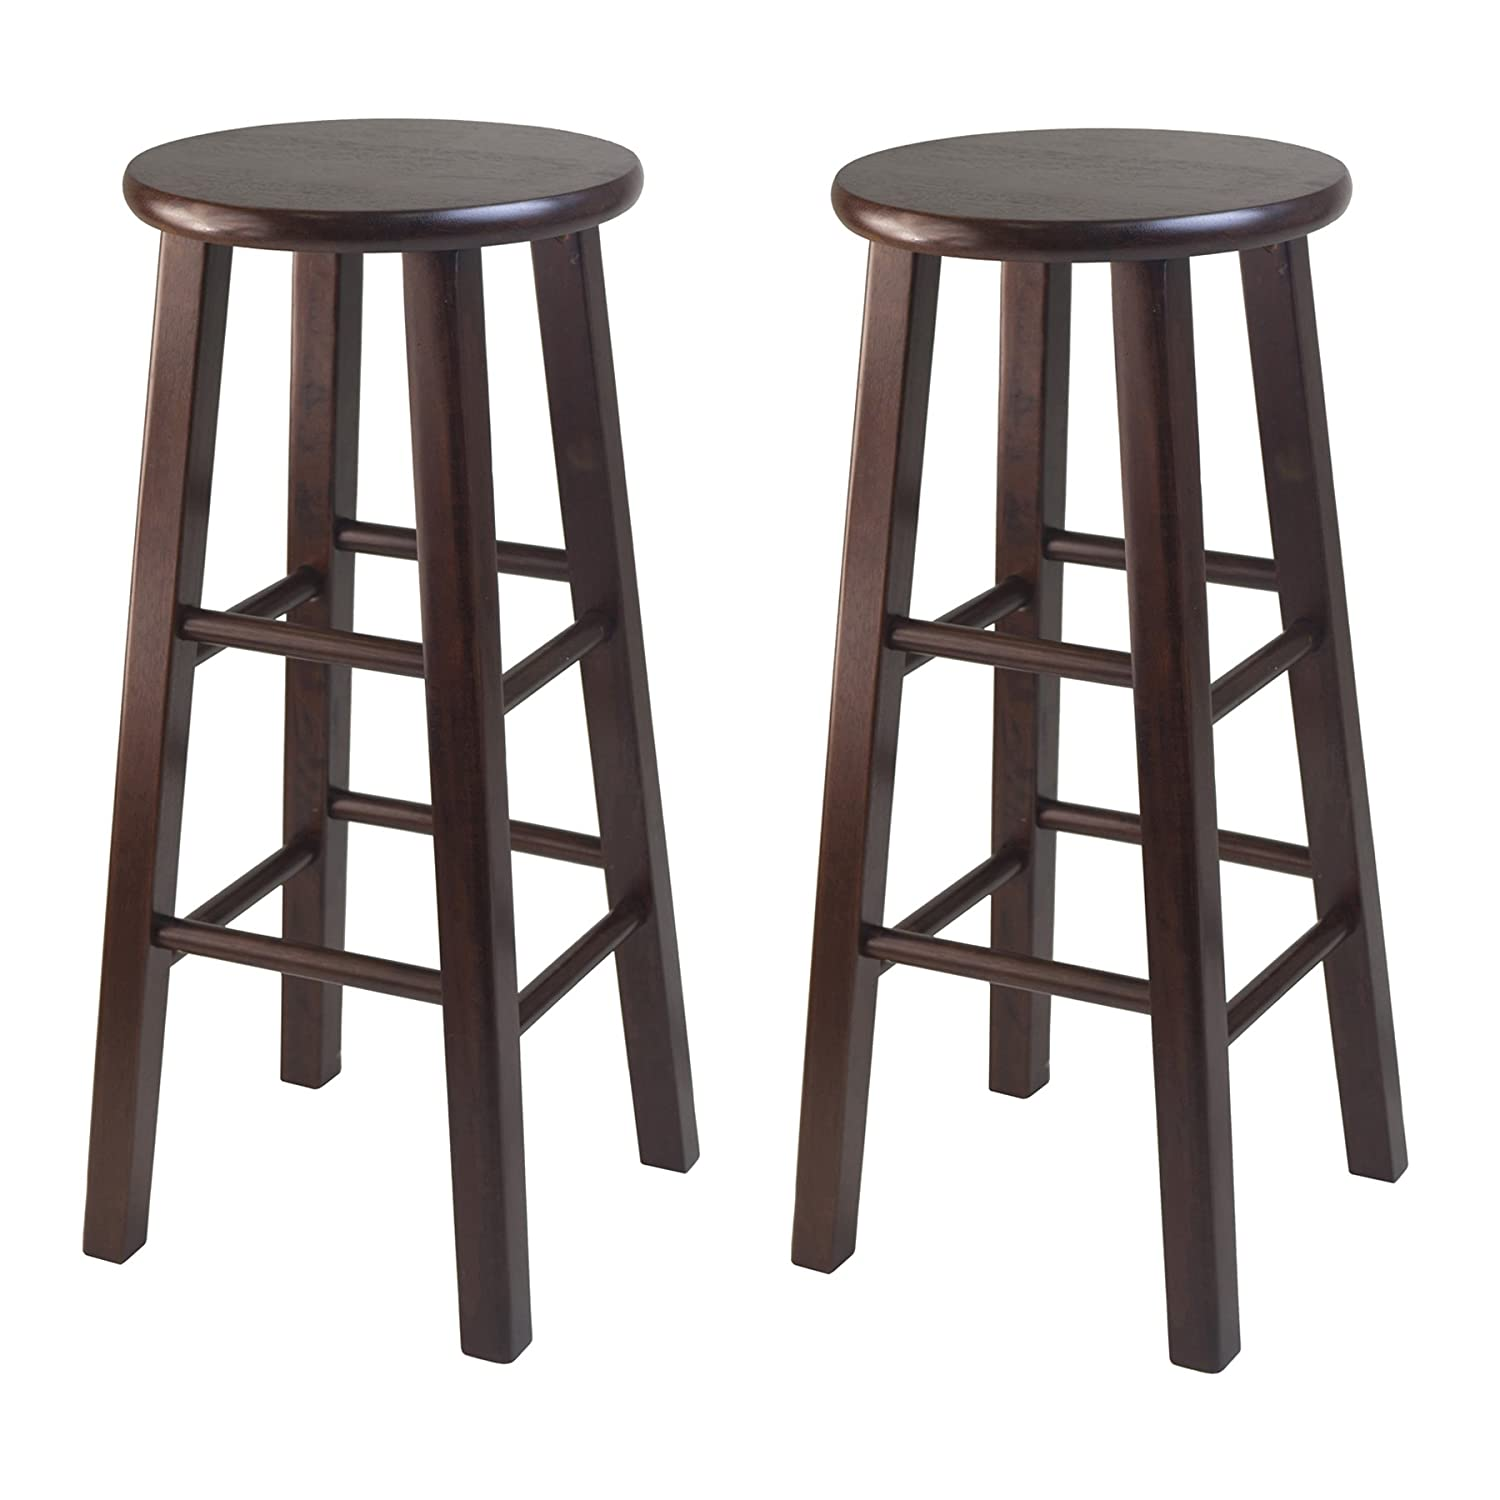 info stool stools short pod kitchen wooden monkey dynastyteam wood